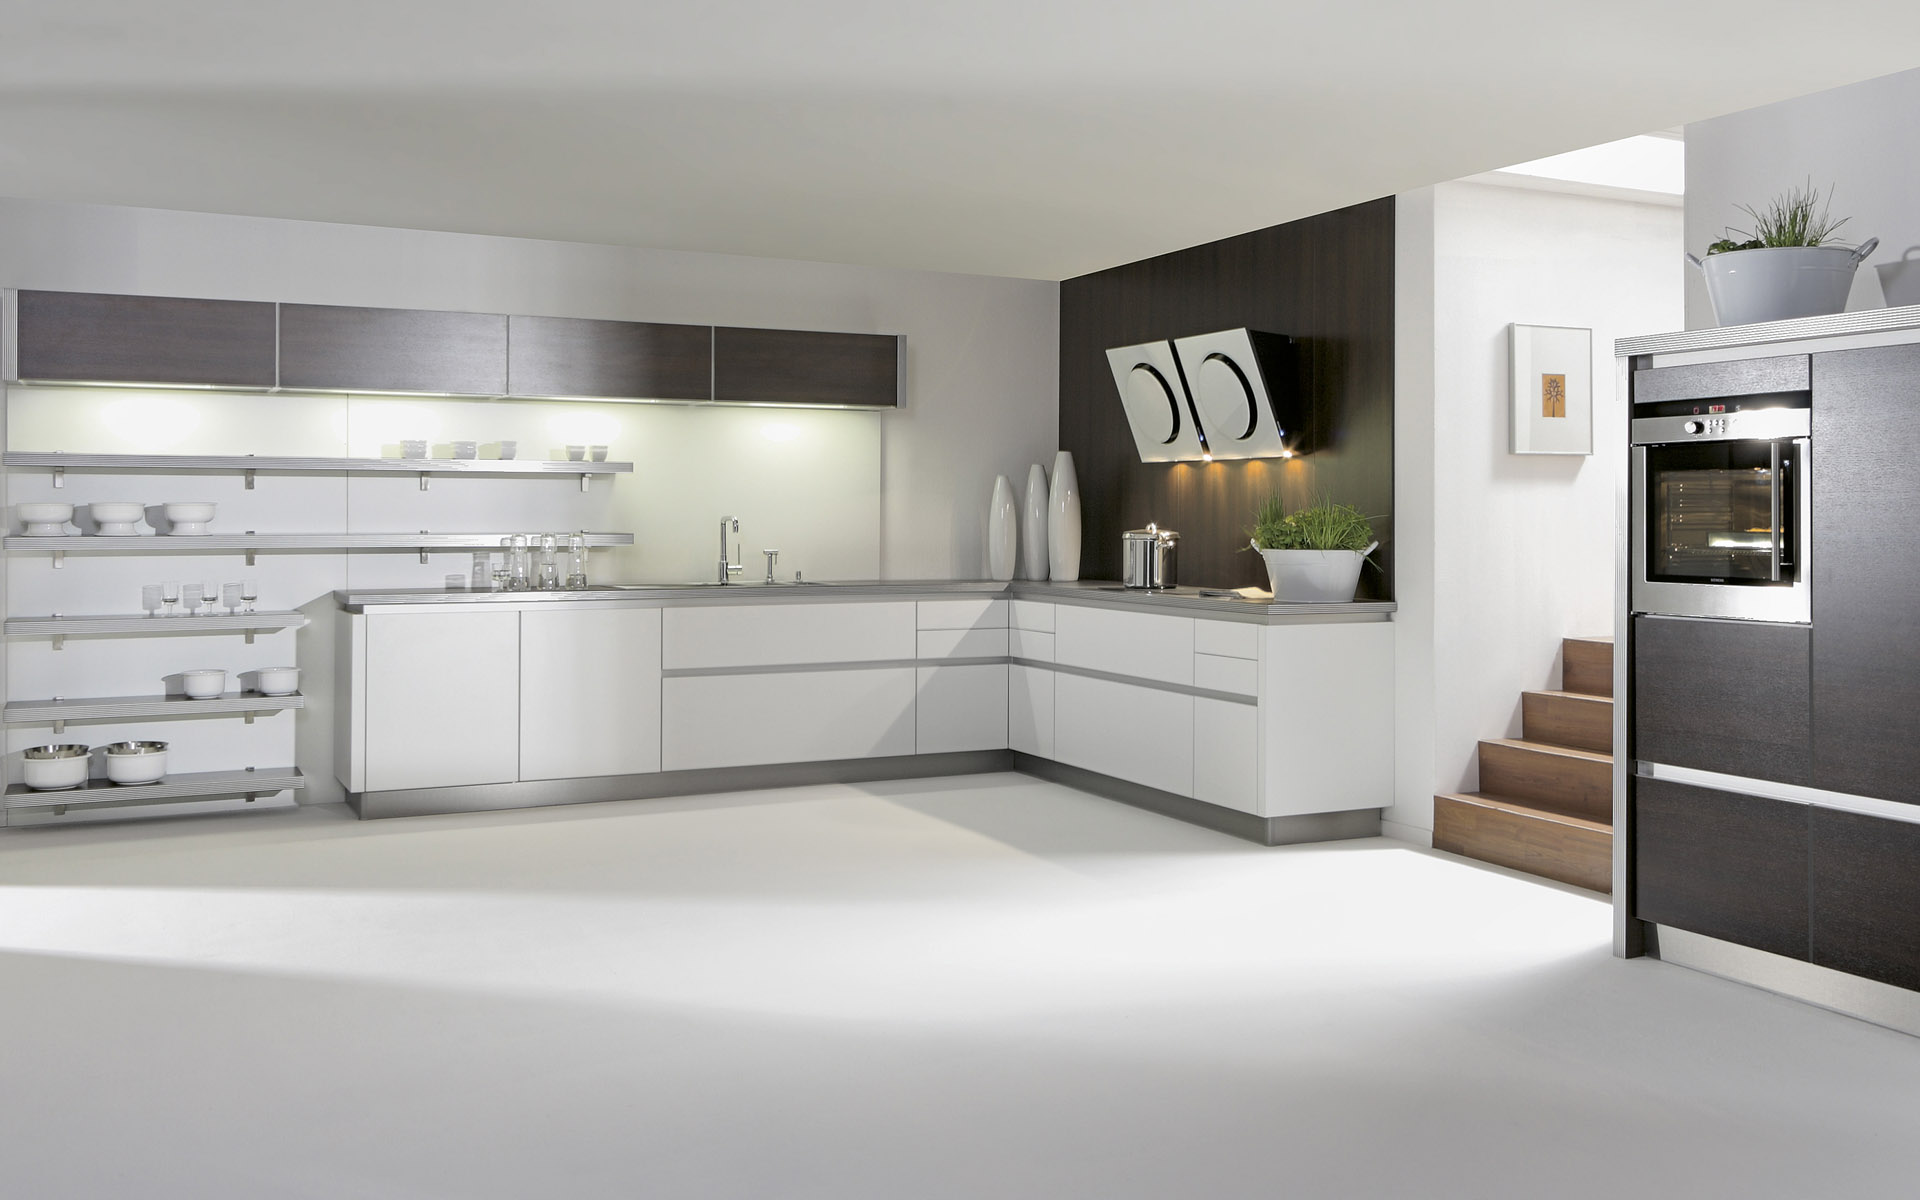 Kitchen Interior Design: Ideal White Interior Themed